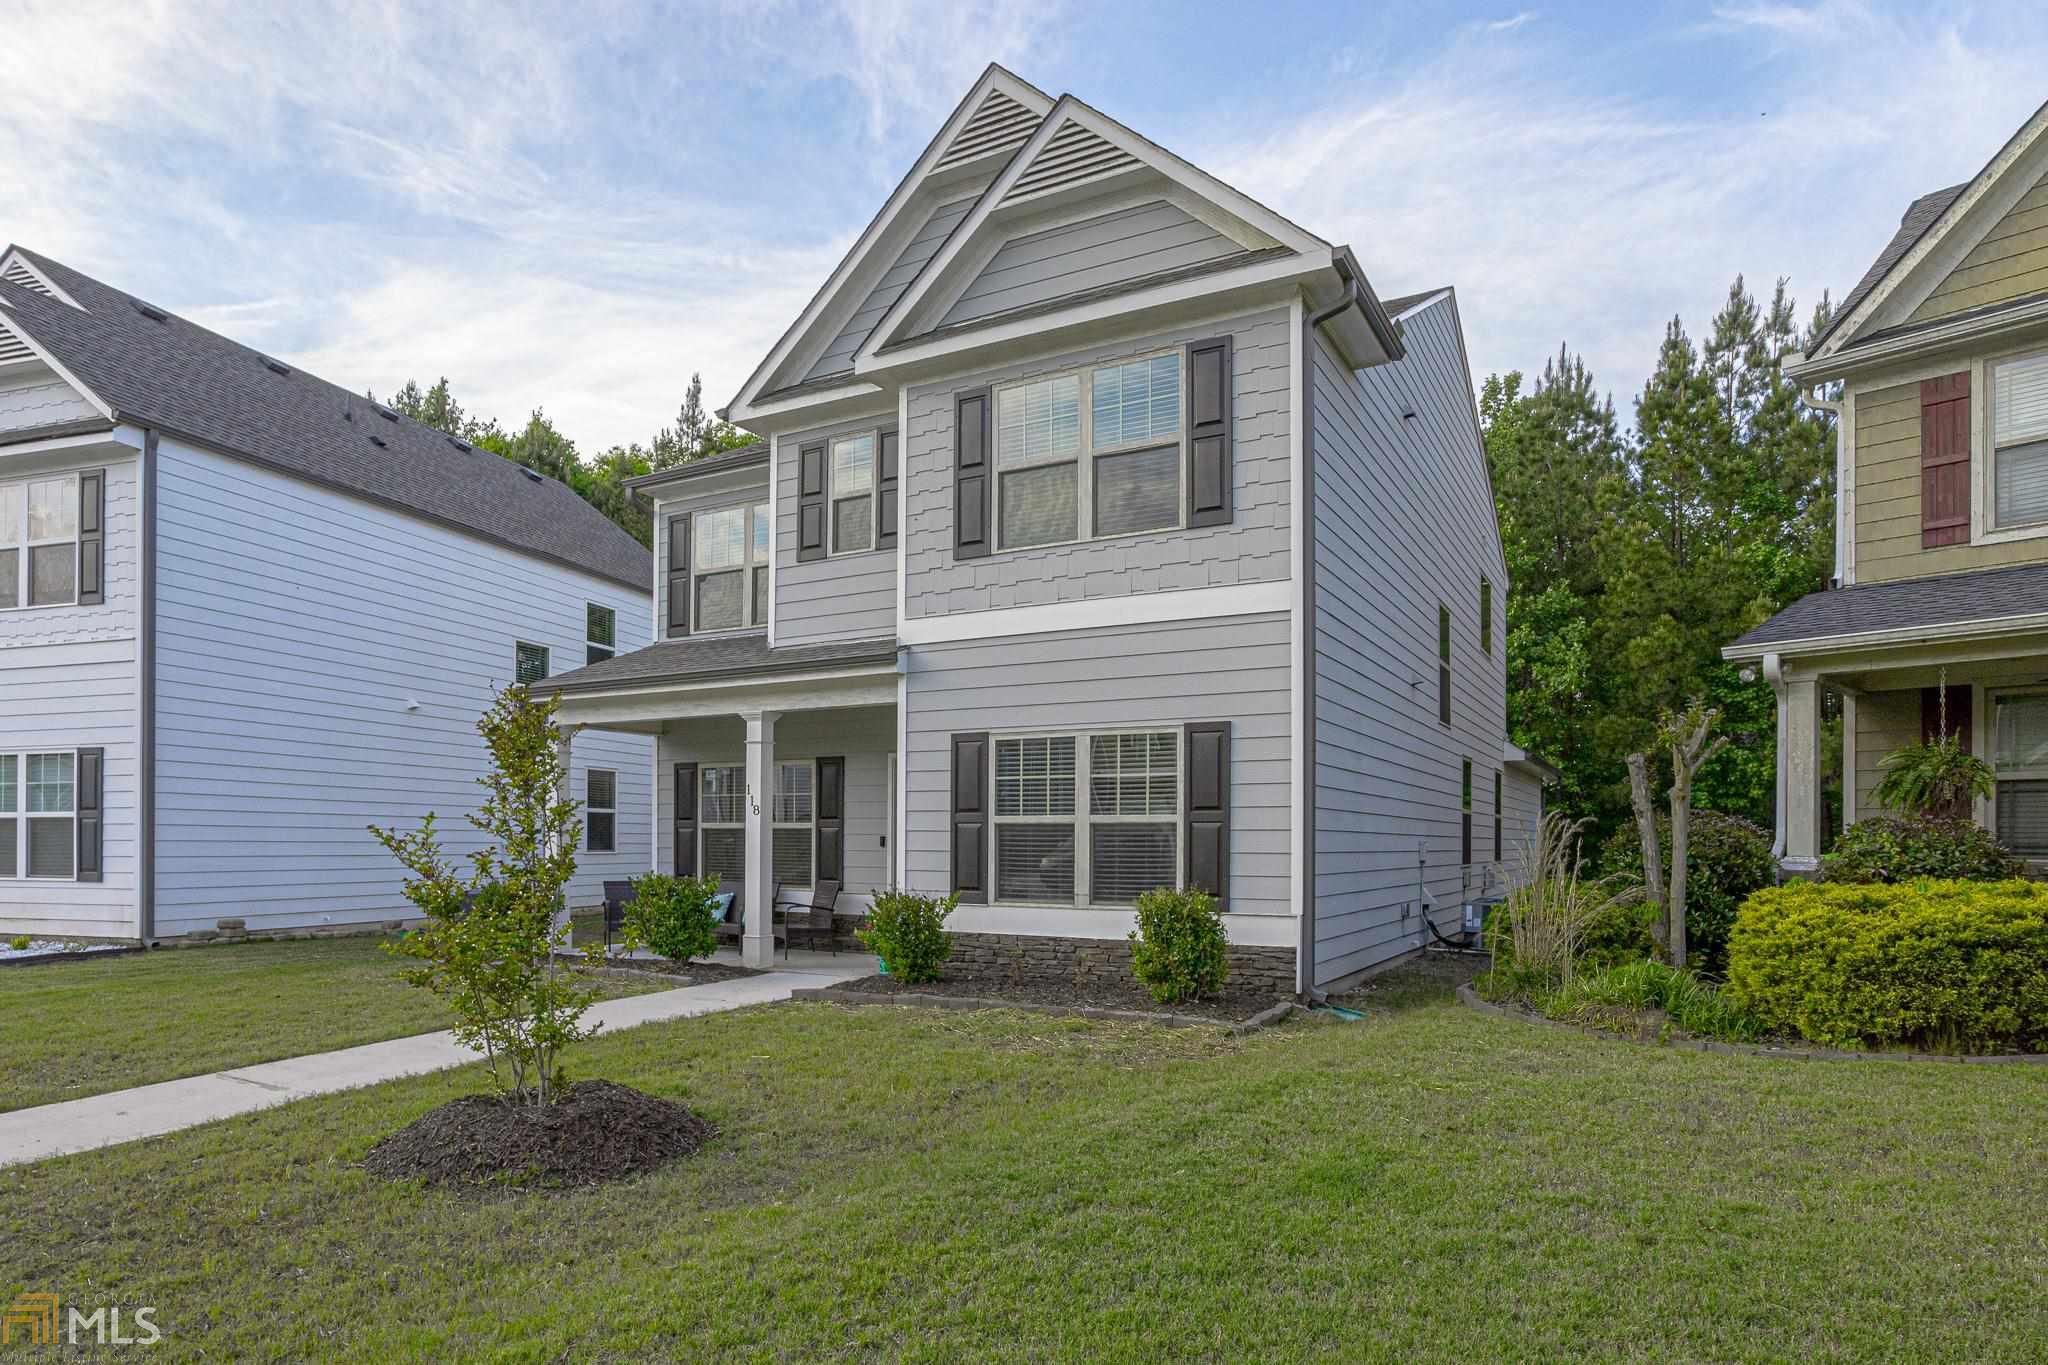 118 Macalester Dr